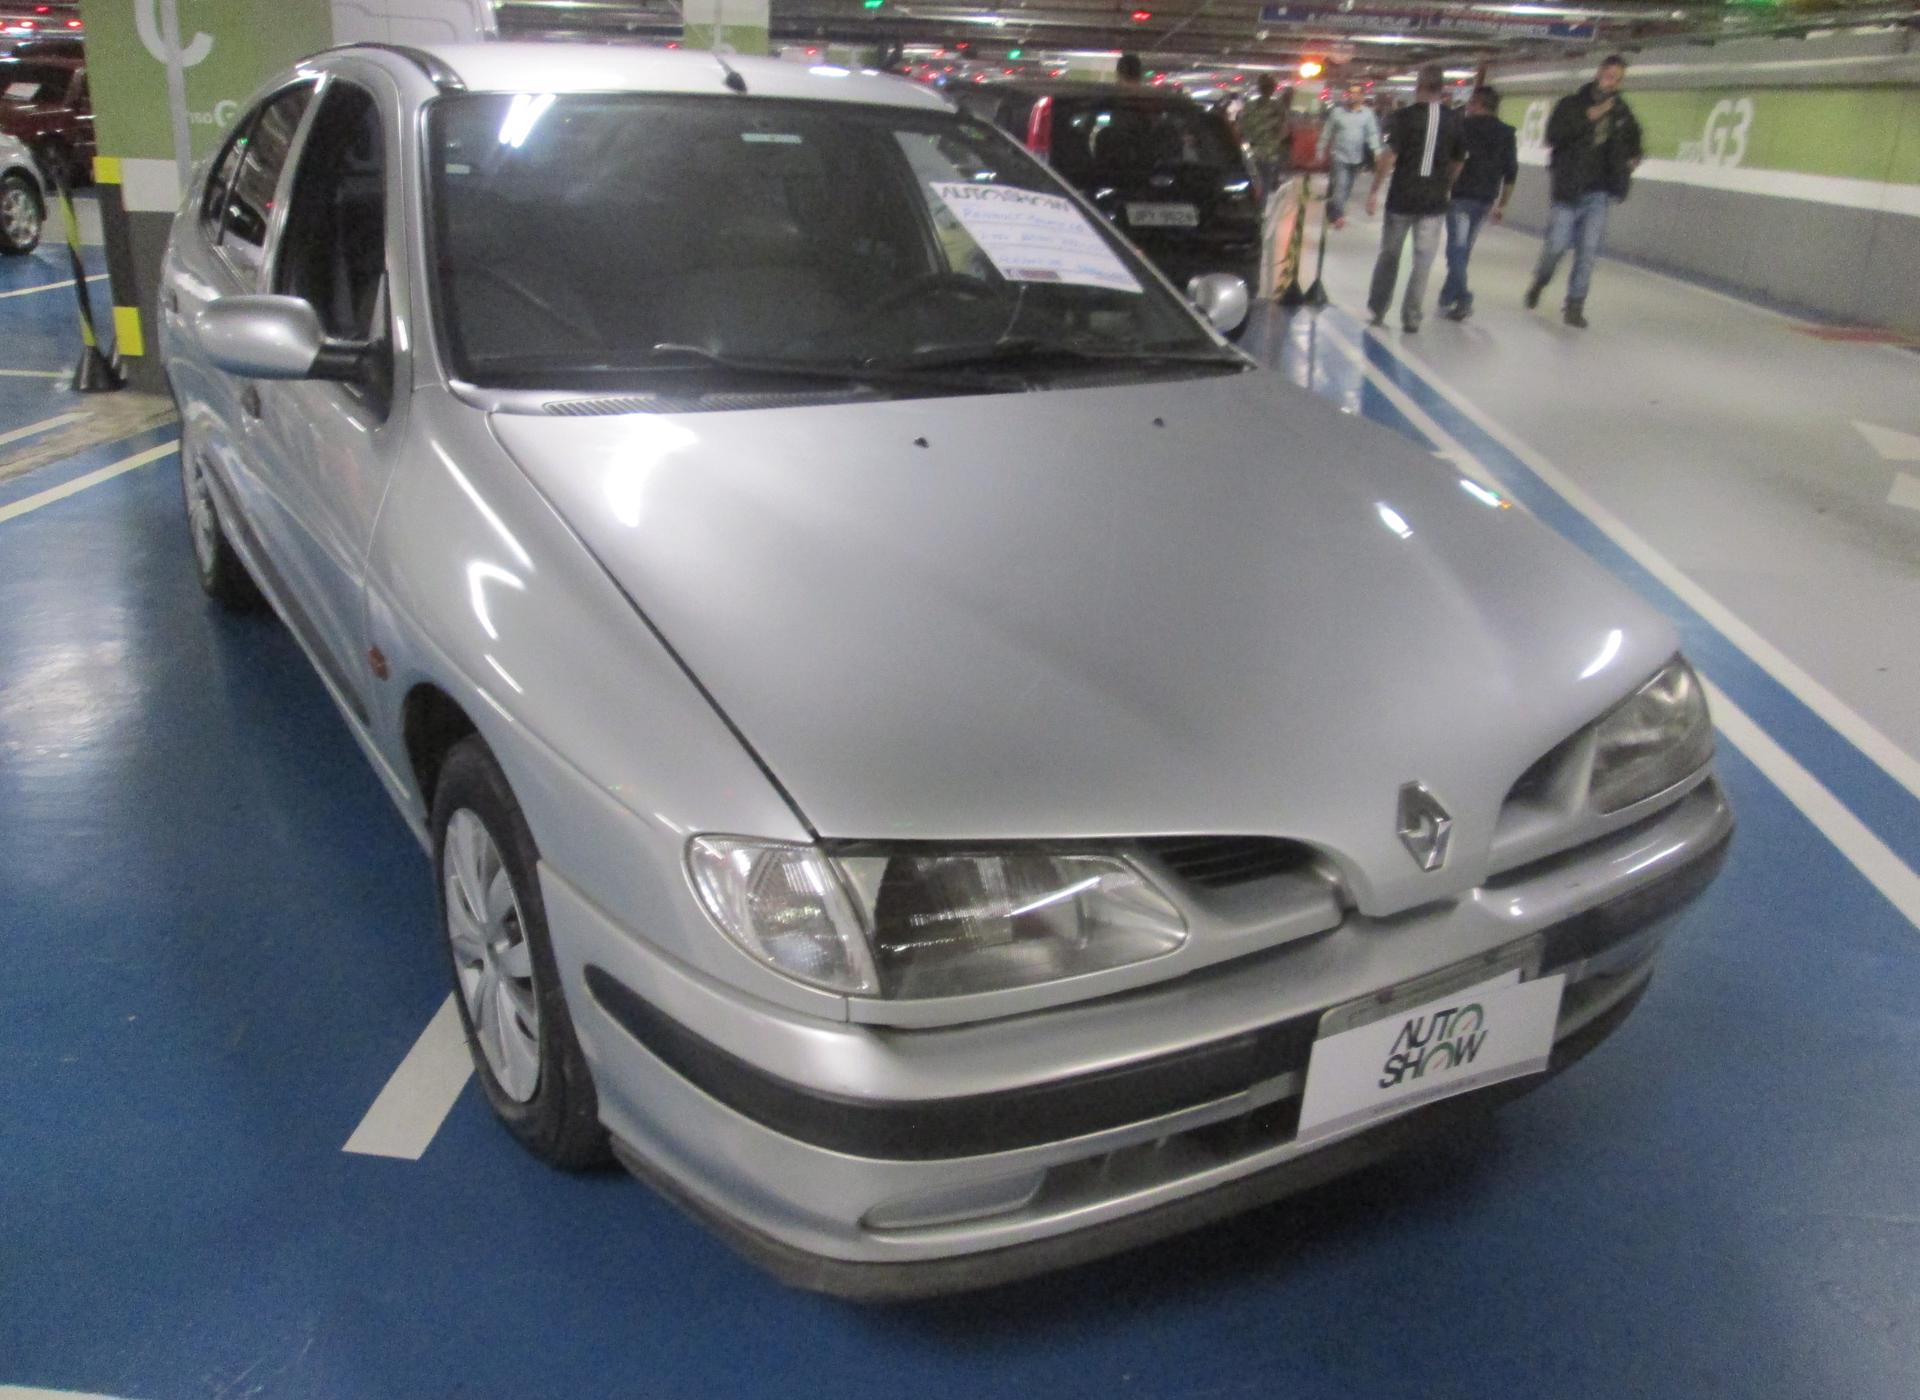 Feirão Auto Show Shopping ABC - RENAULT MEGANE SEDAN RT/ALIZÉ 1.6 16V 1999-2000